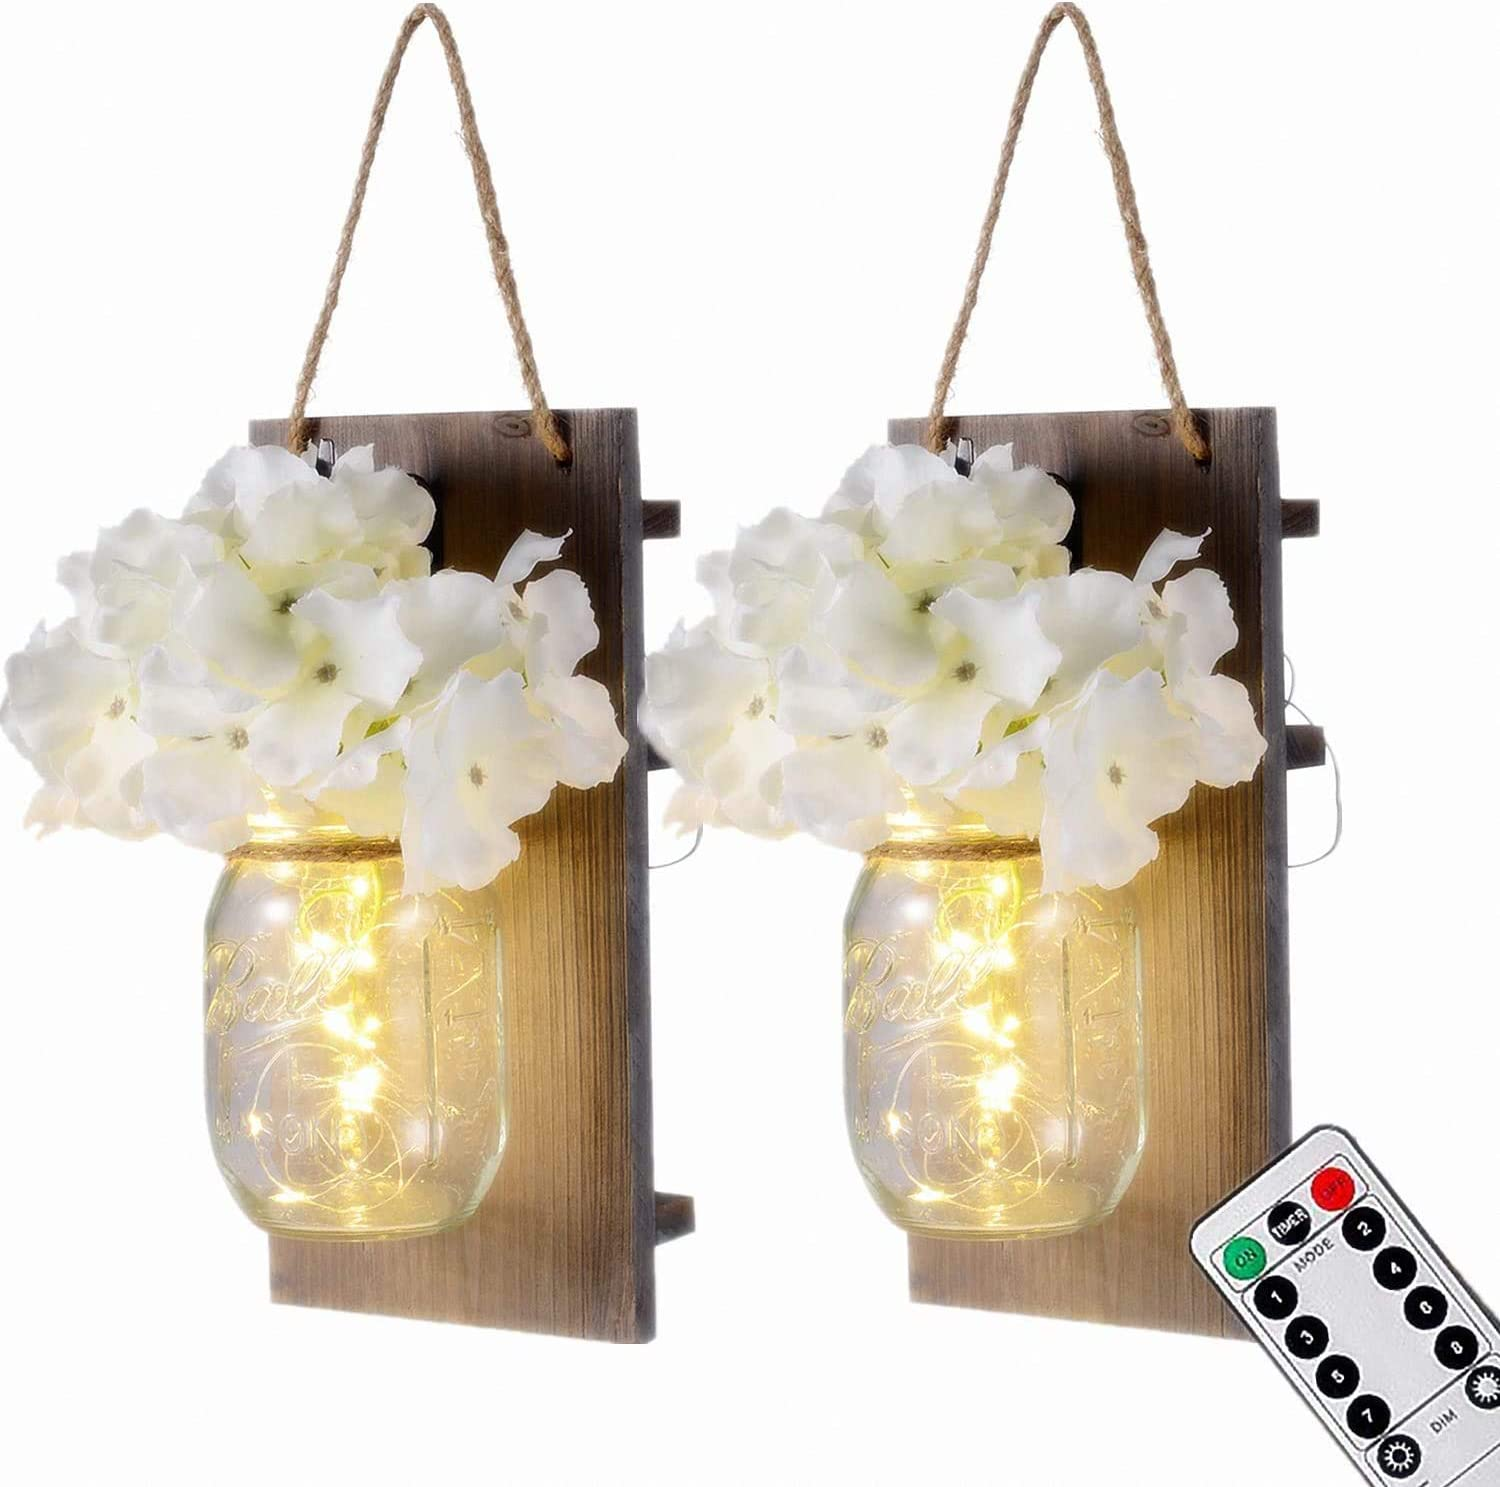 Lightess Mason Jar Wall Lights With Remote Control Rustic Bedroom Wall Decor Hanging Battery Powered Jar Sconce With Led Fairy Lights For Farmhouse Decor Sya11 Set Of 2 Amazon Ca Tools Home